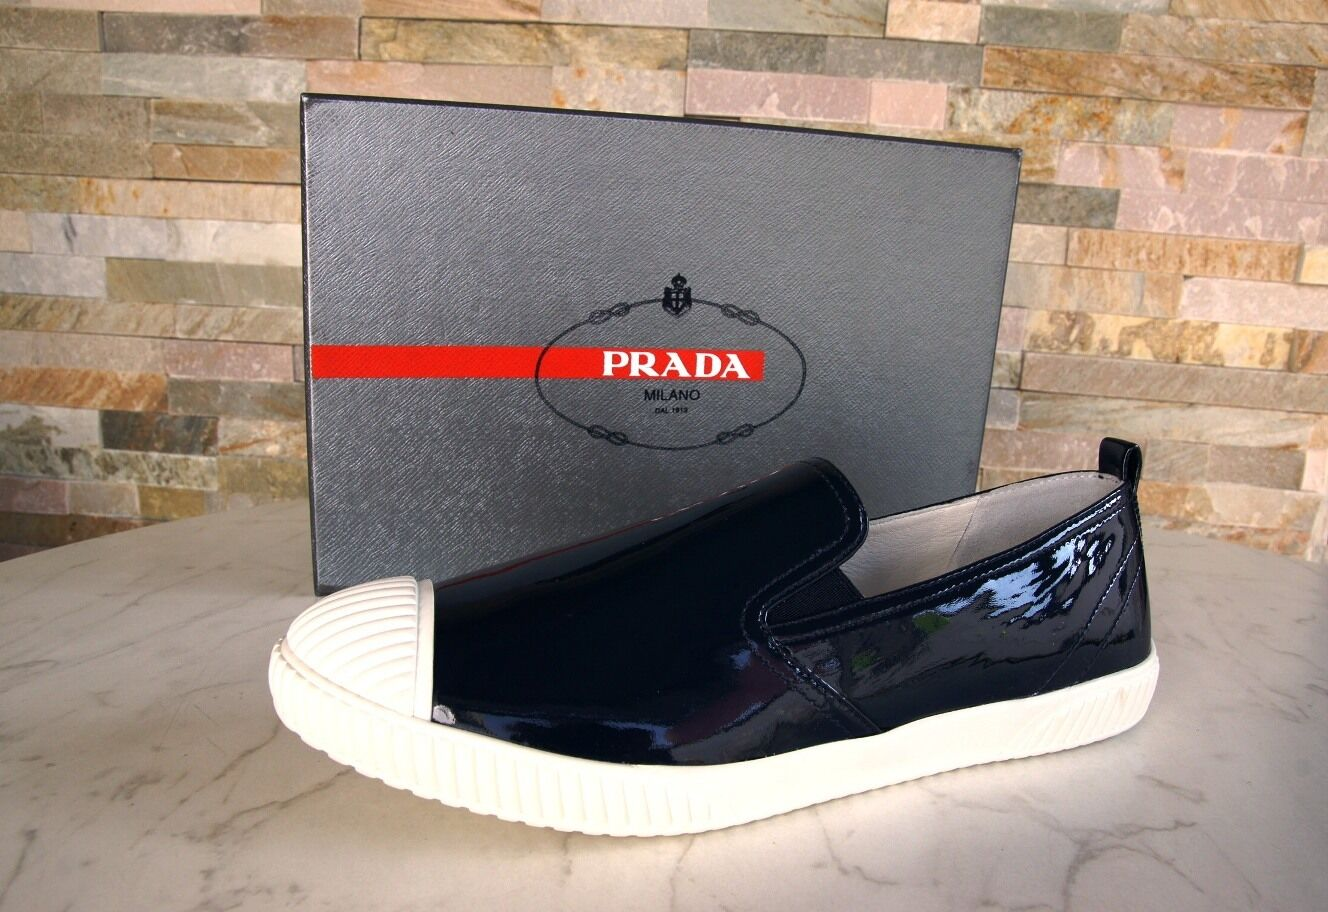 Prada talla 40 Slipper mocasines slip-on zapatos charol zapatos 3s5952 azul ex PVP